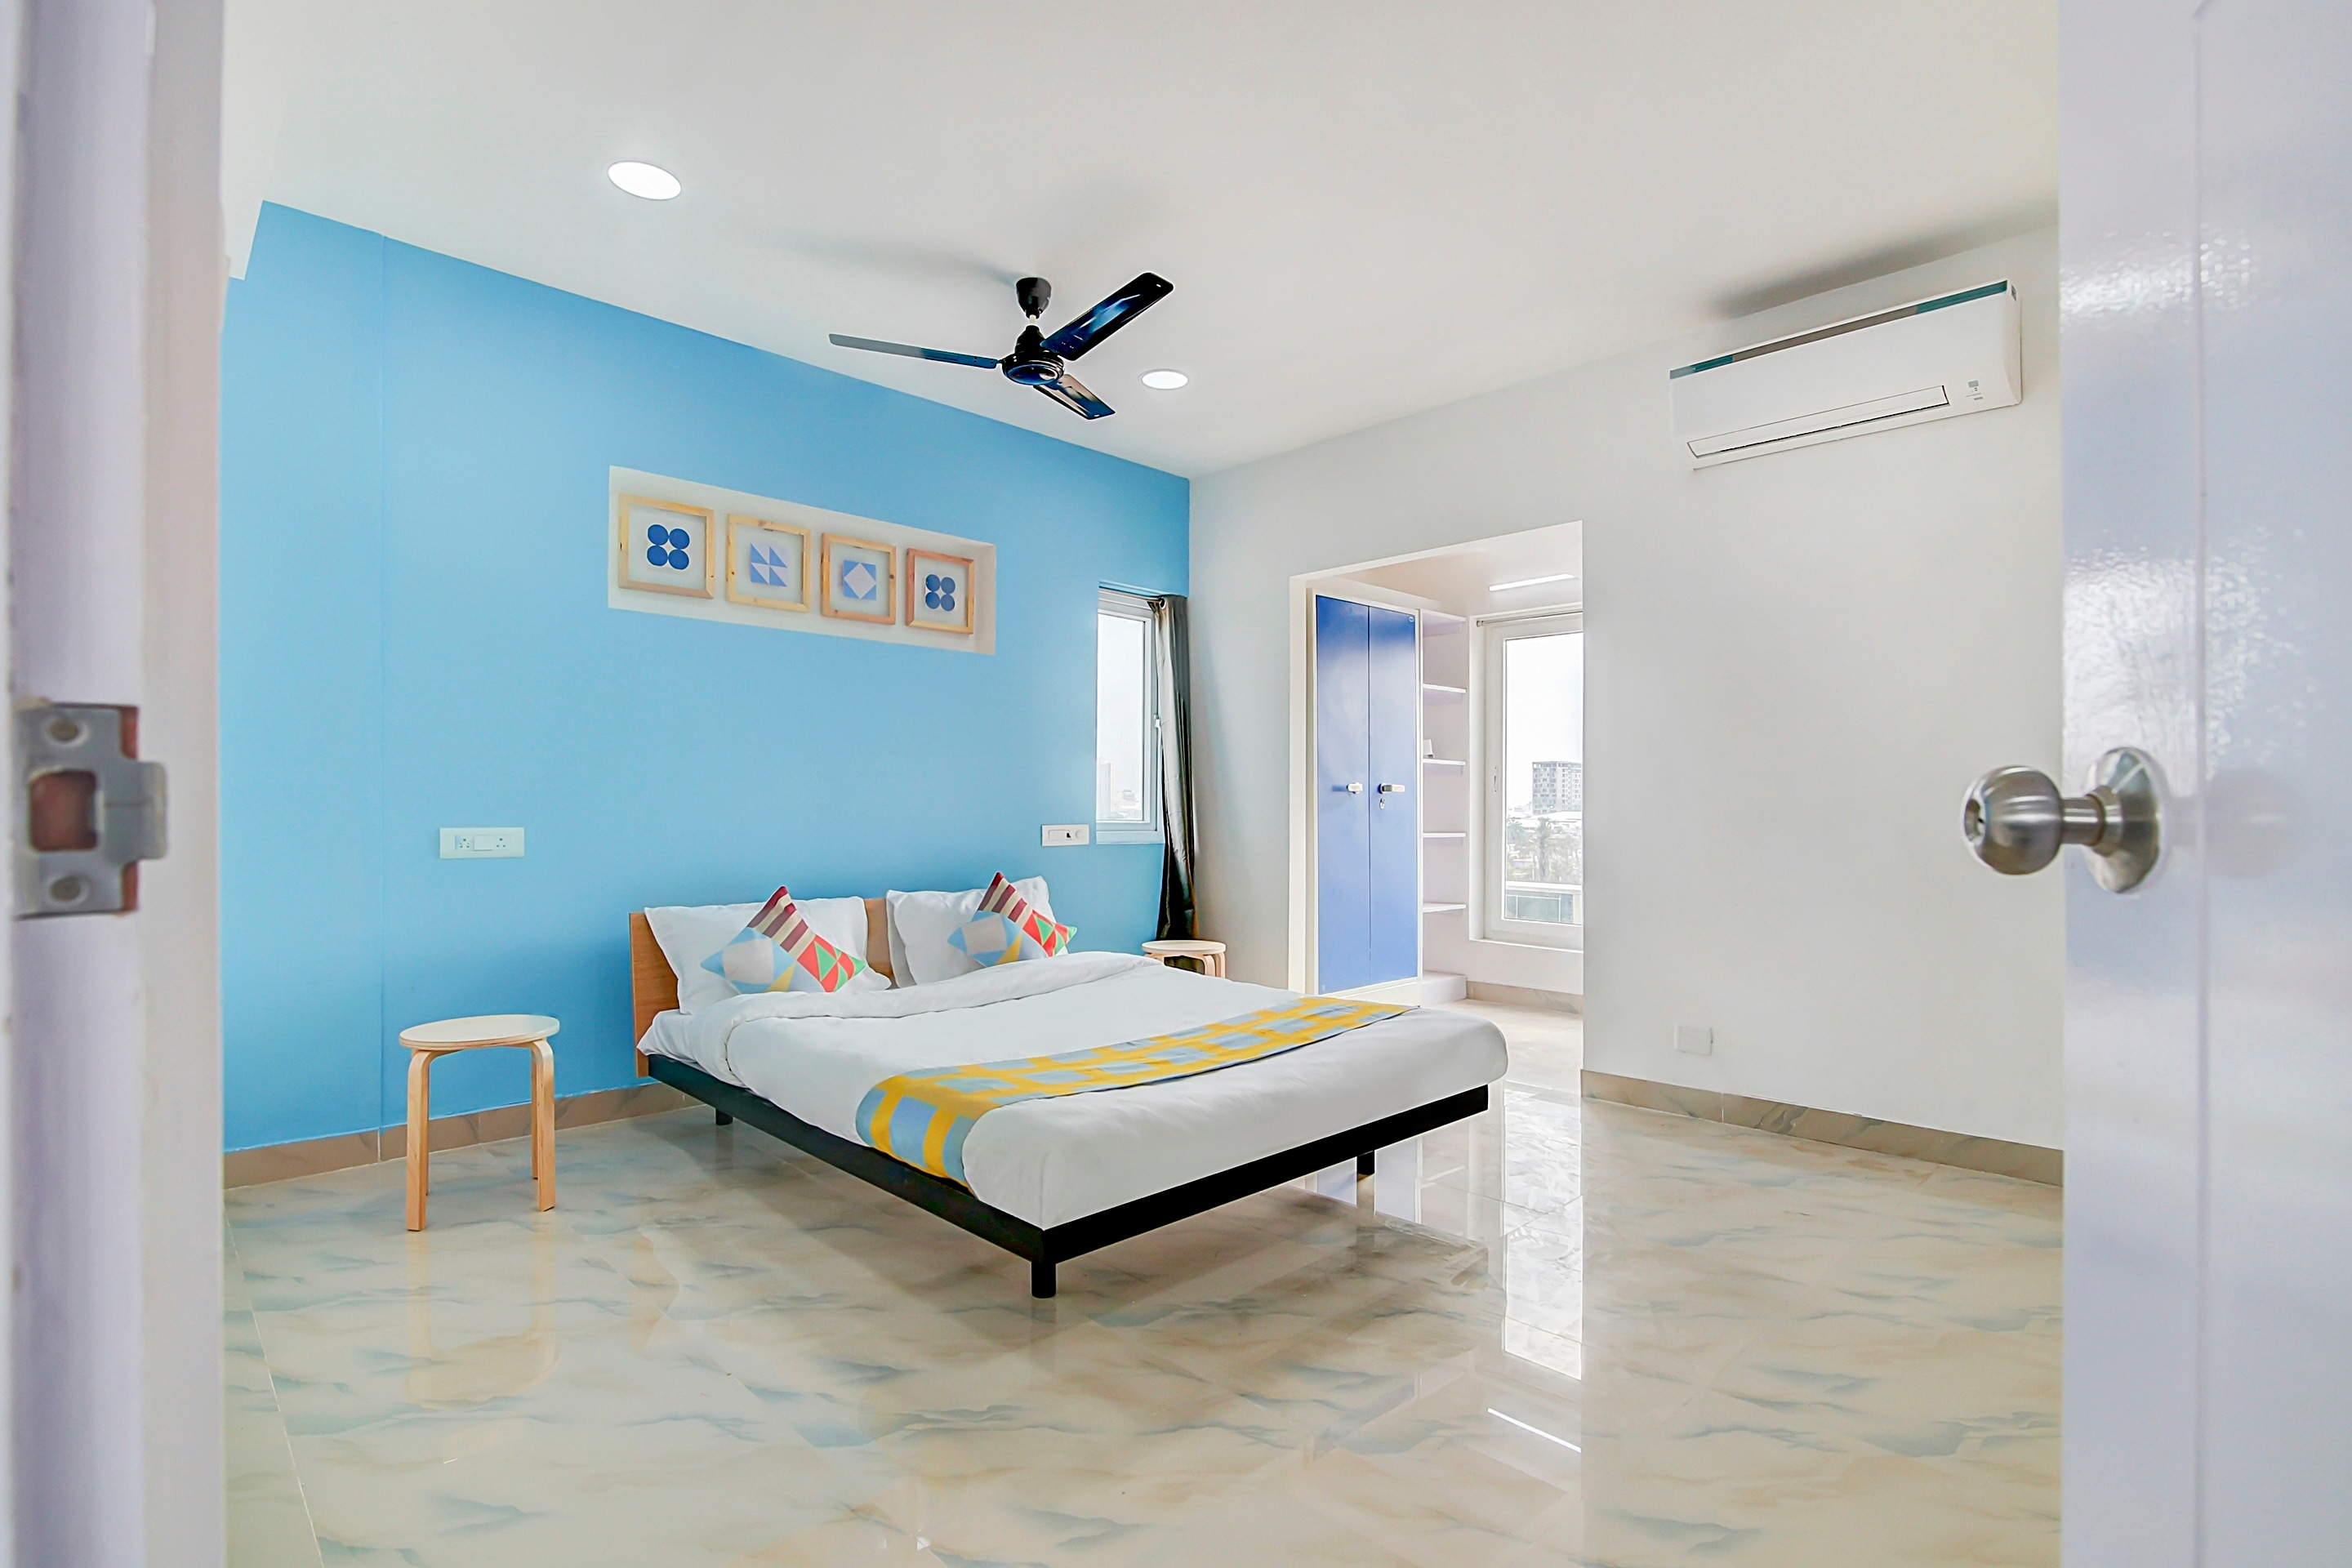 Hotels near Potheri, Chennai with Living Area Starting